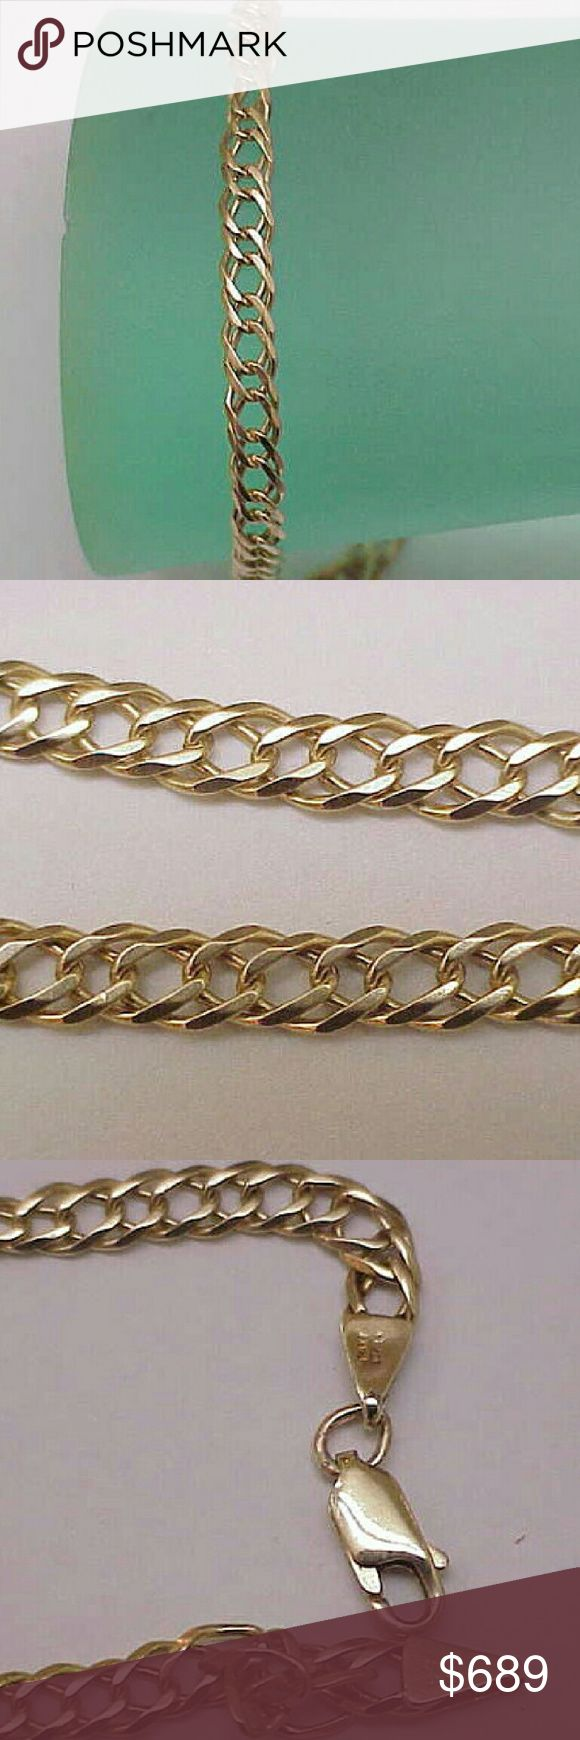 Estate 14k gold Cuban double link bracelet Italy Unique estate vintage 14k yellow gold Cuban double link bracelet.  7 1/2 inches long. 5mm wide.  Weight 6.8gr. Made in Italy. Jewelry Bracelets